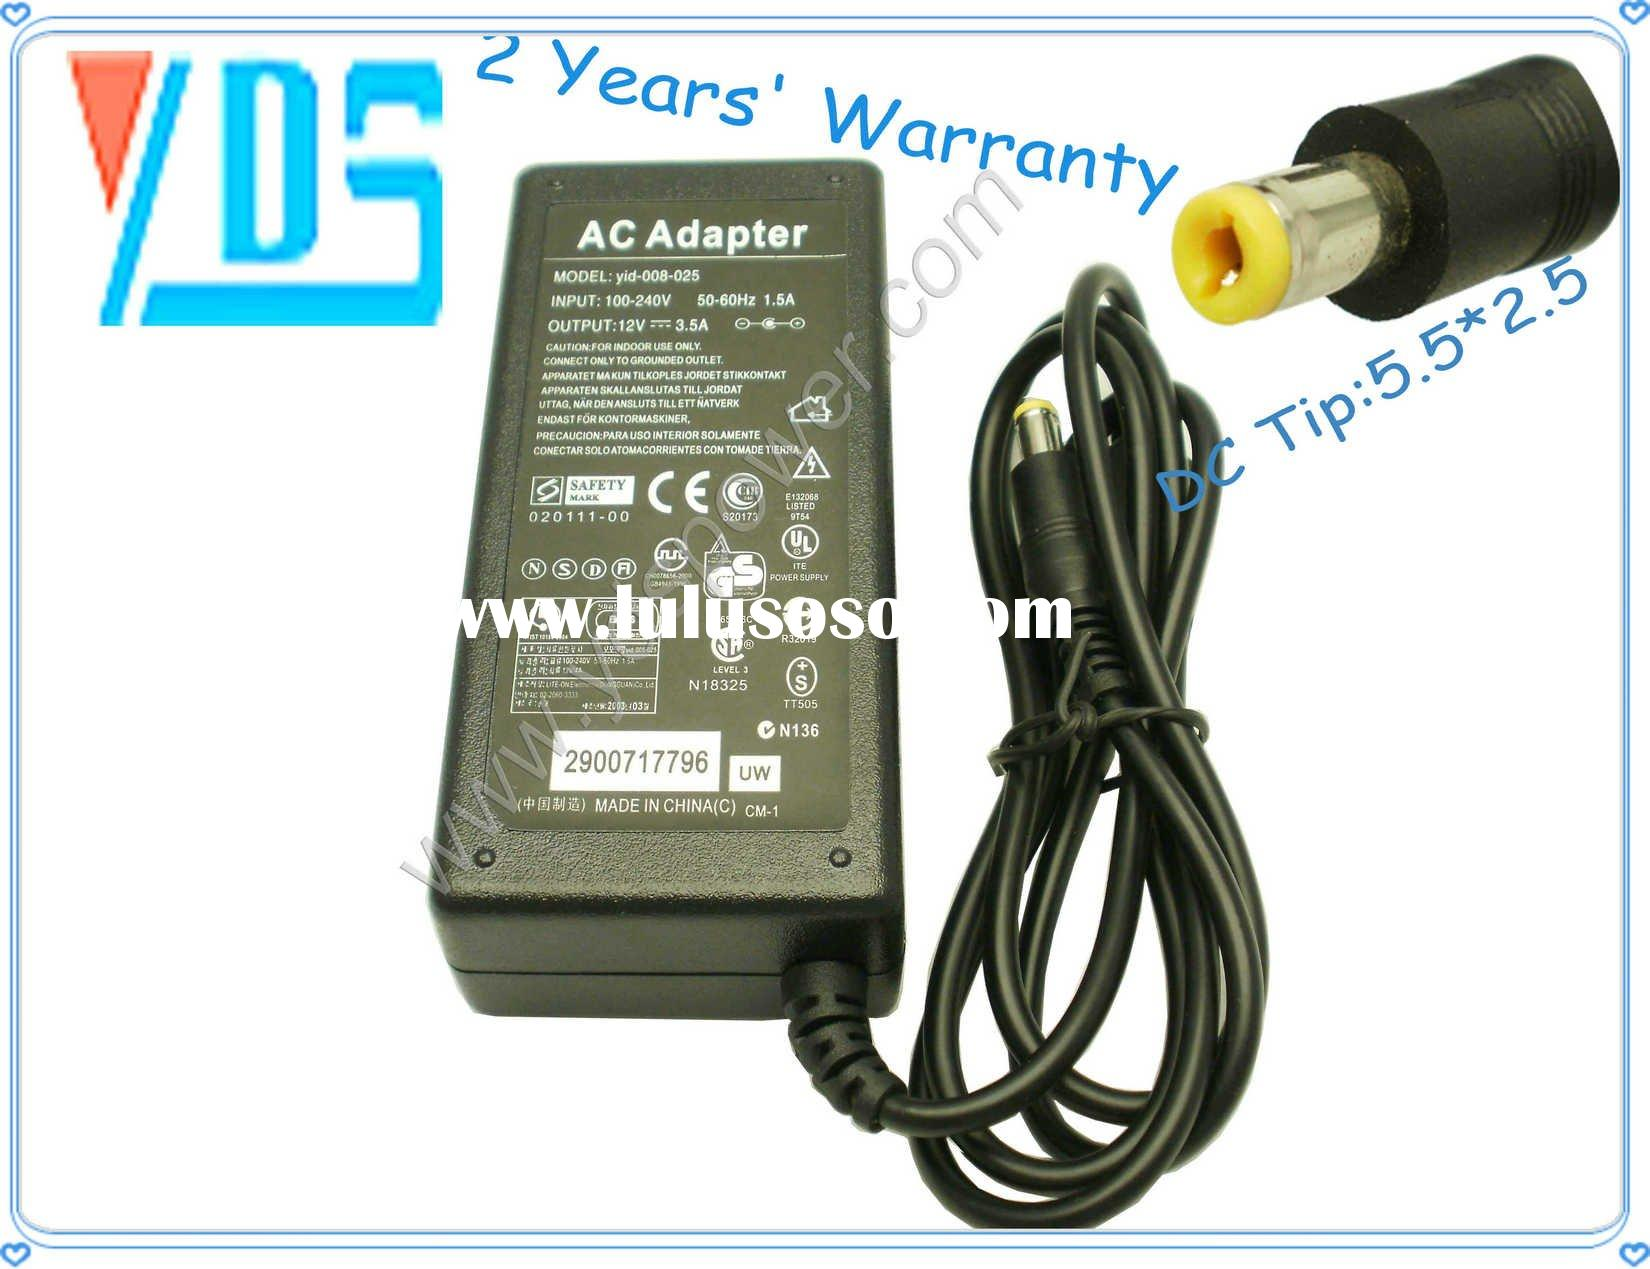 For All AC Adapter 12V 3.5A with DC Tip 5.5*2.5